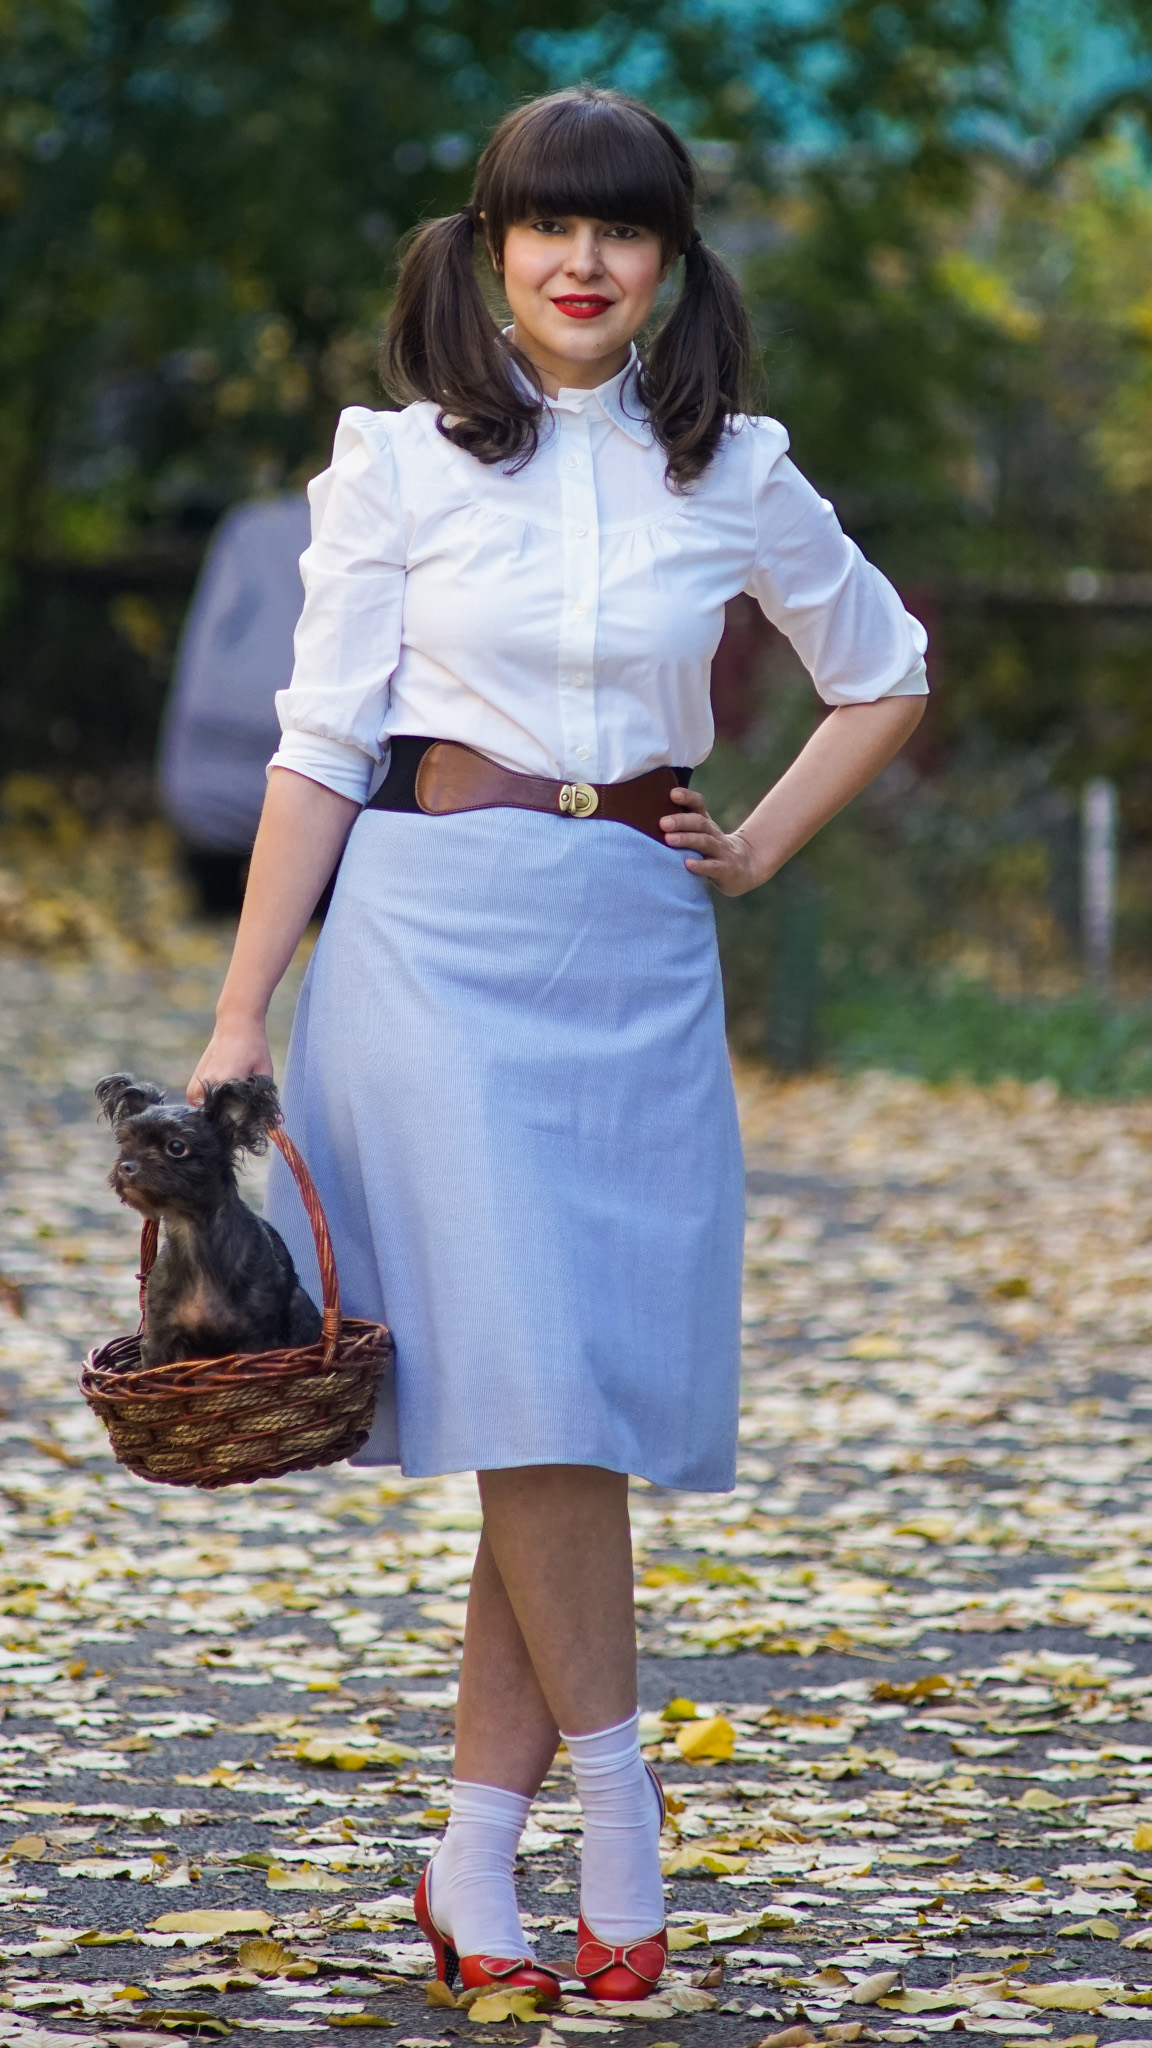 easy DIY Halloween costume dorothy white shirt blue skirt basket dog doggy stuffed toy stuffed bear red shoes white socks pony tails girly autumn